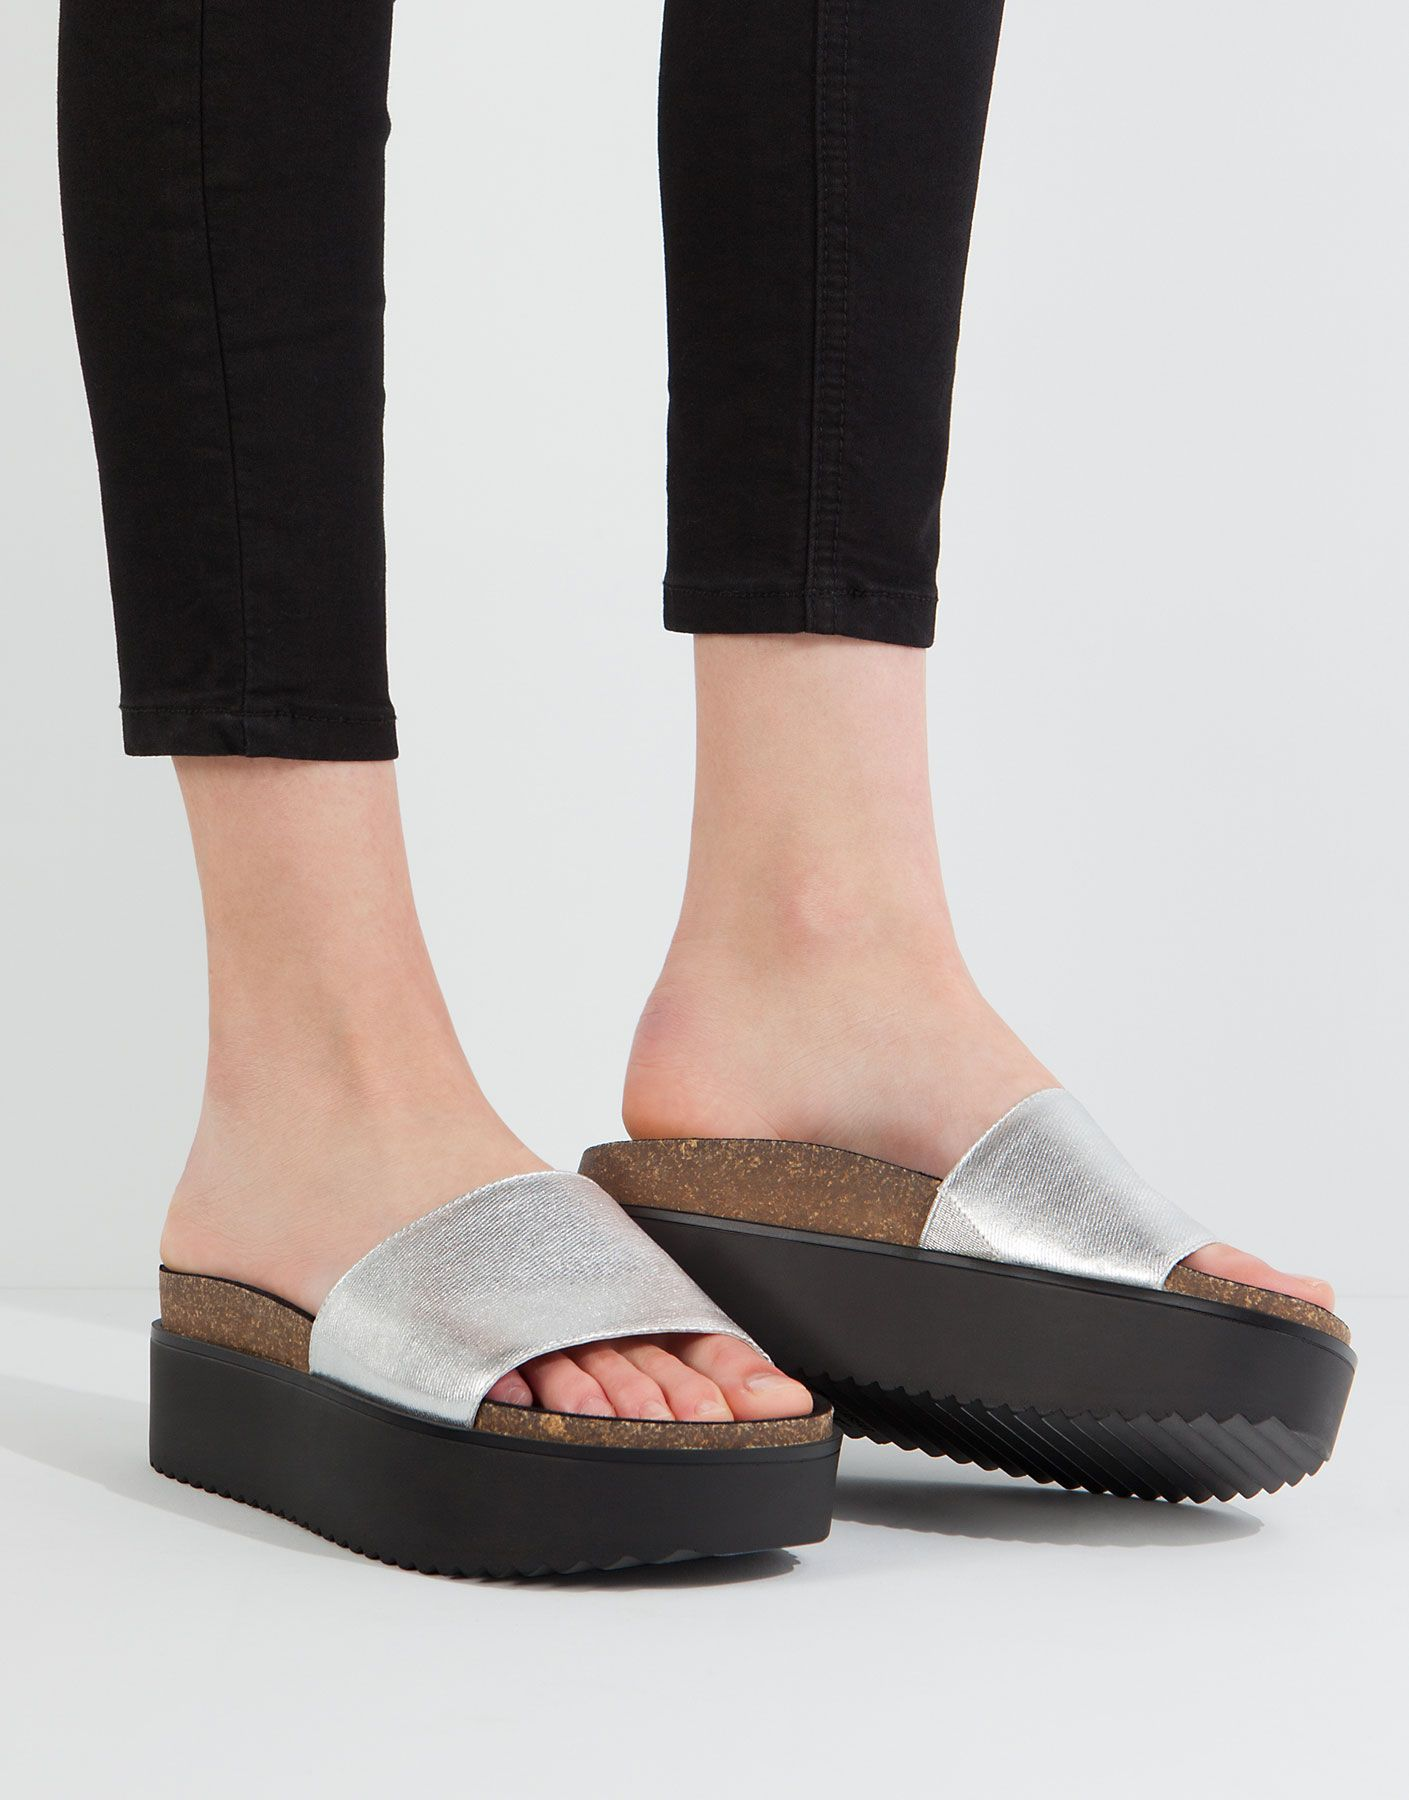 VAMP BLOCK SANDALS - New products - NEW PRODUCTS - PULL&BEAR Greece